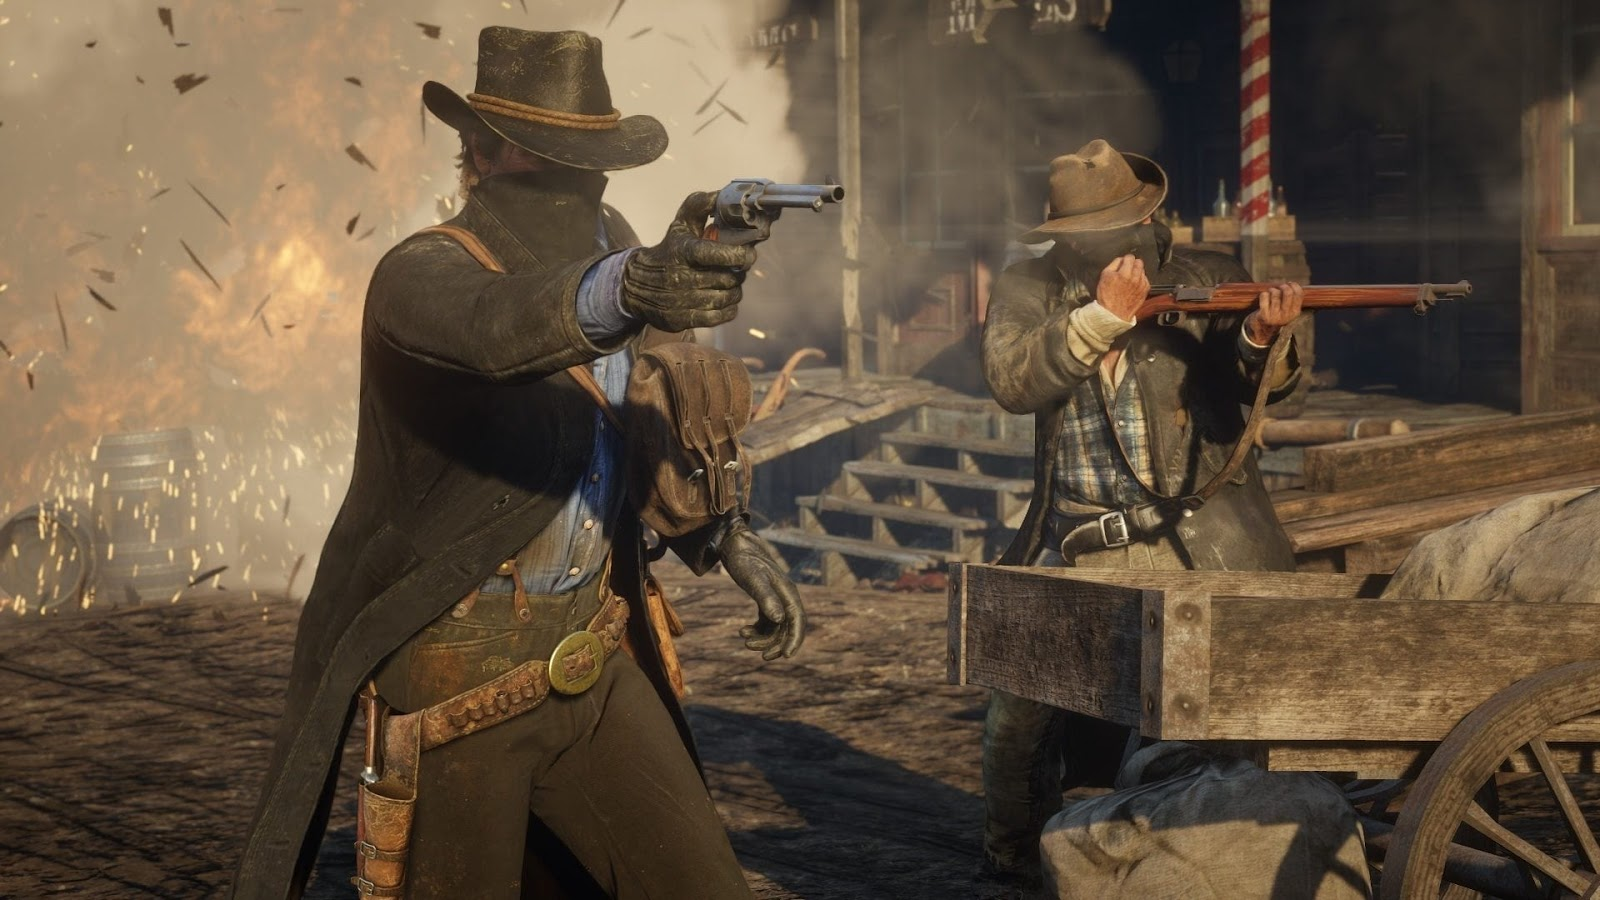 Download The Last Cowboy Free For PC